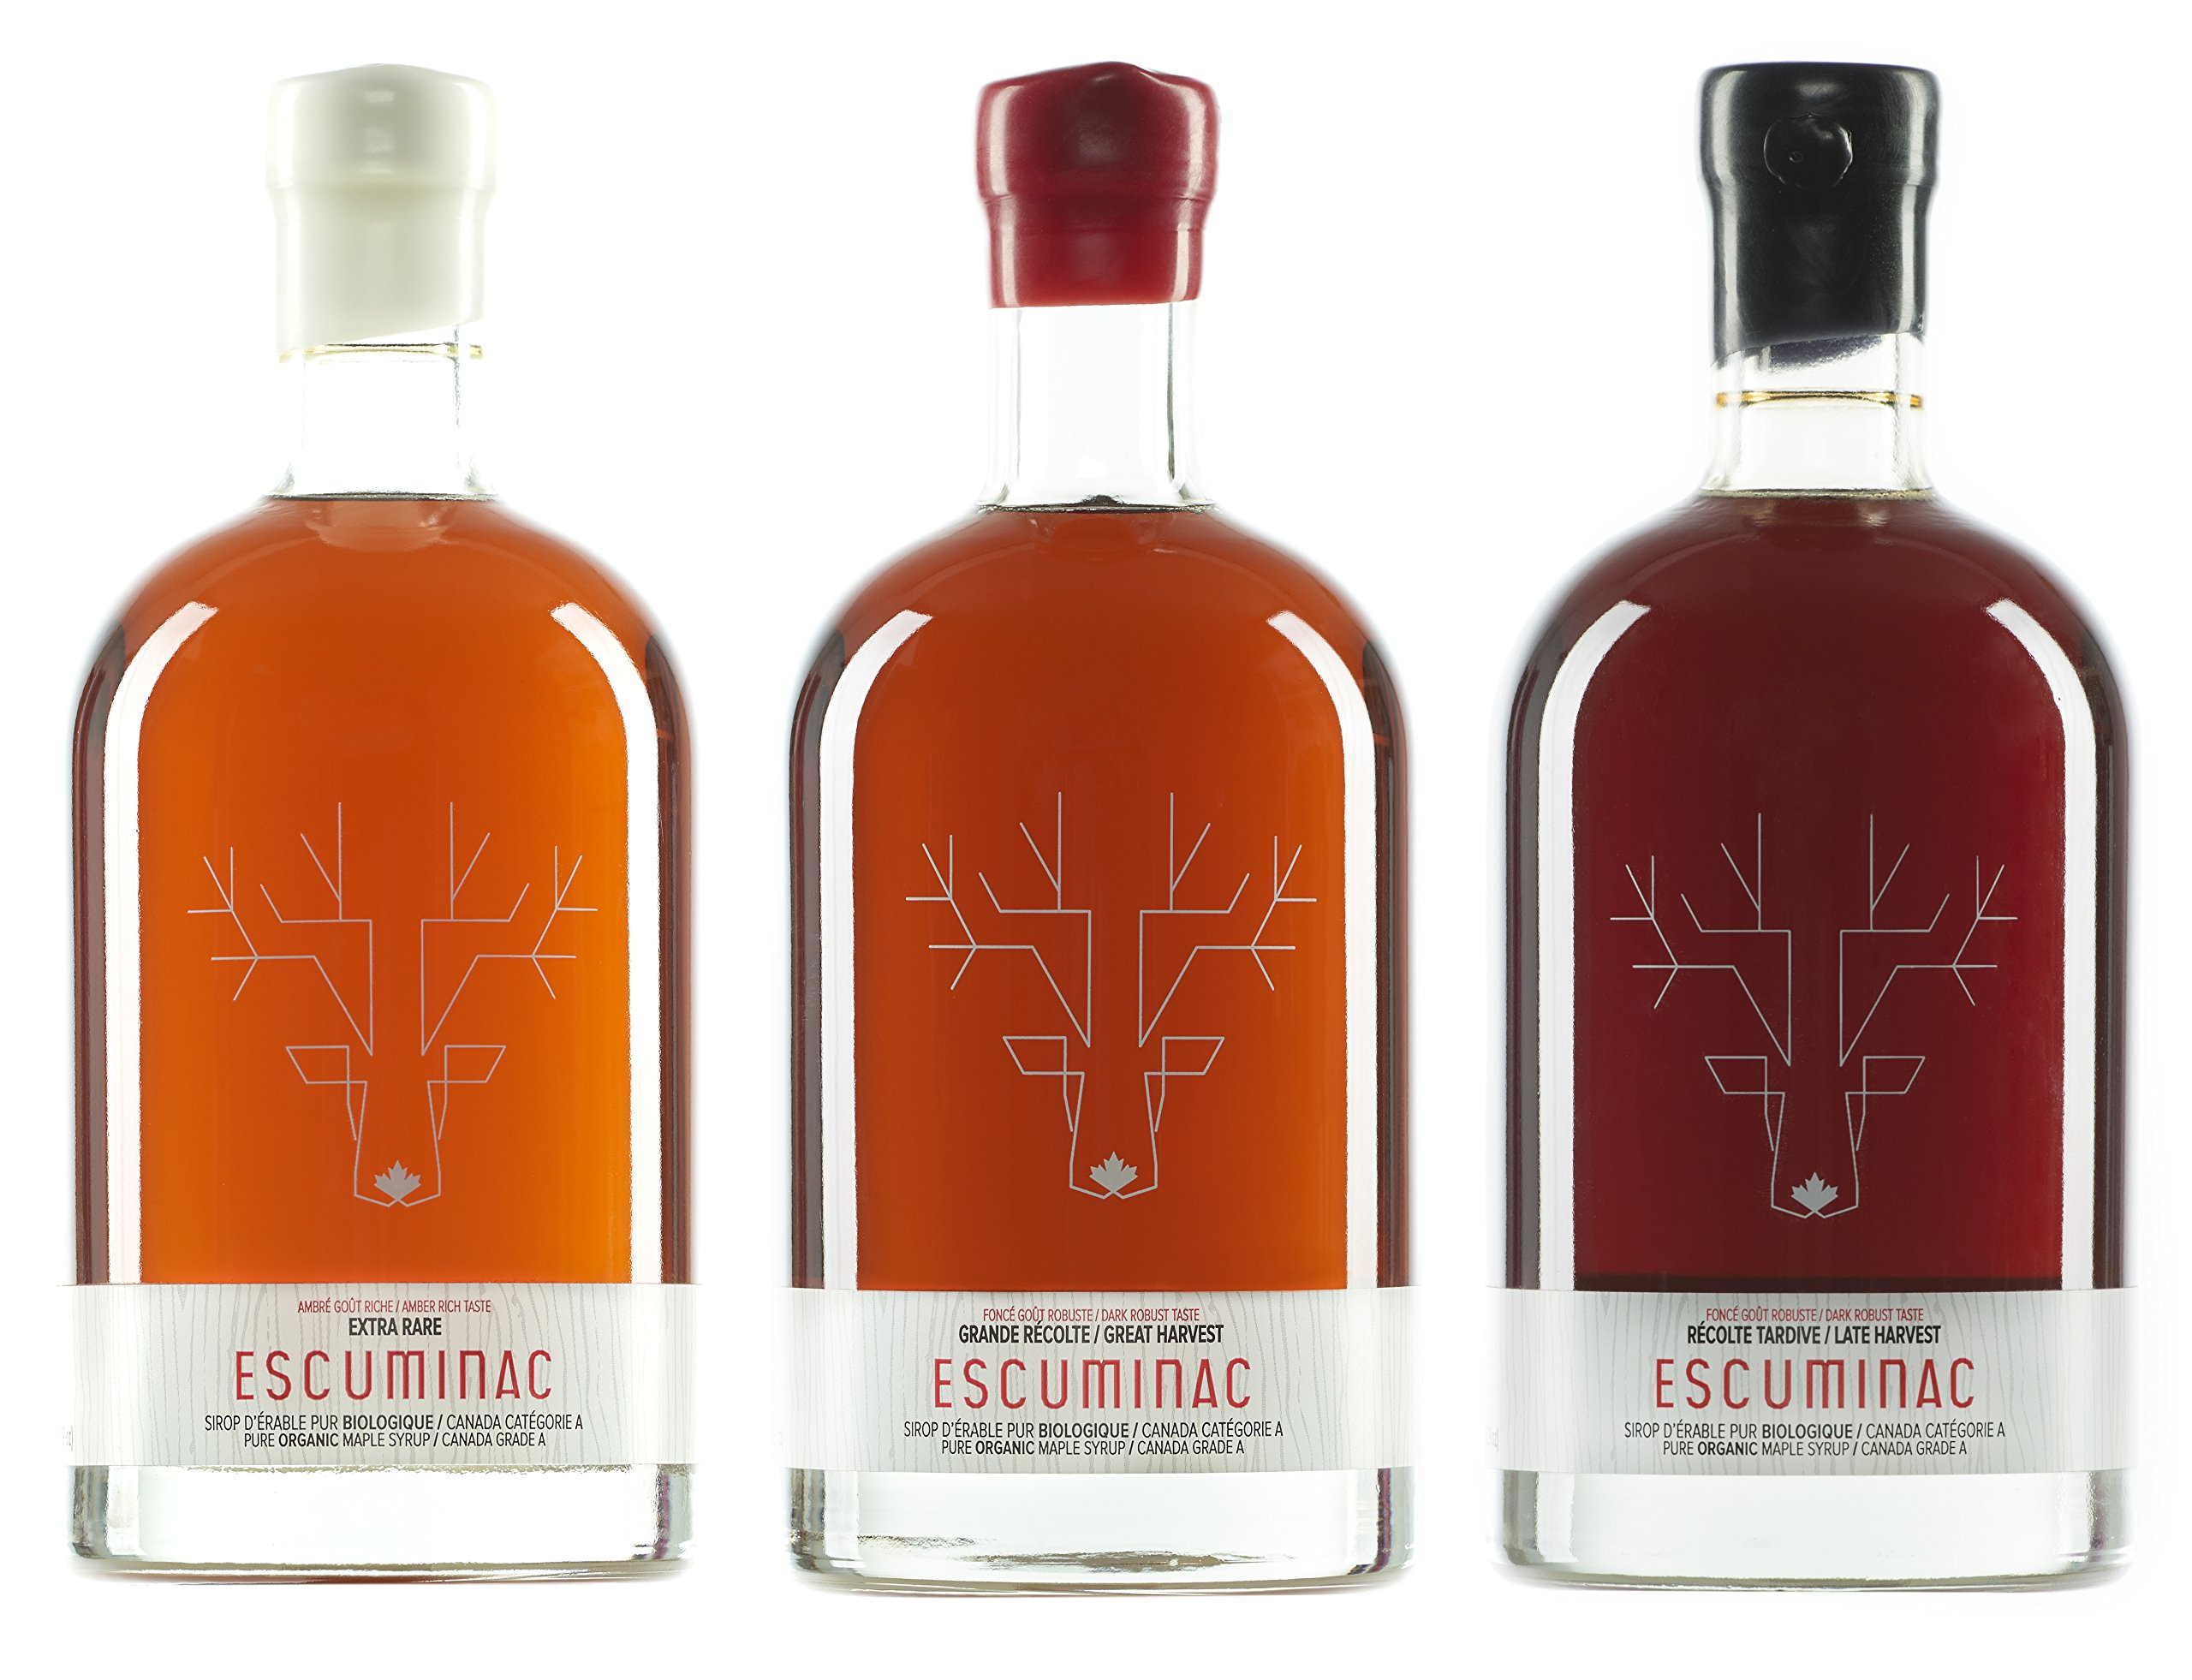 Award Winning Escuminac Canadian Maple Syrup Gift Bundle Grade A Including Our Extra Rare, Great Harvest and Late Harvest - Pure Organic Unblended Single Forest - 3 X 16.9 fl oz (500 ml) - Easter Gift by Escuminac